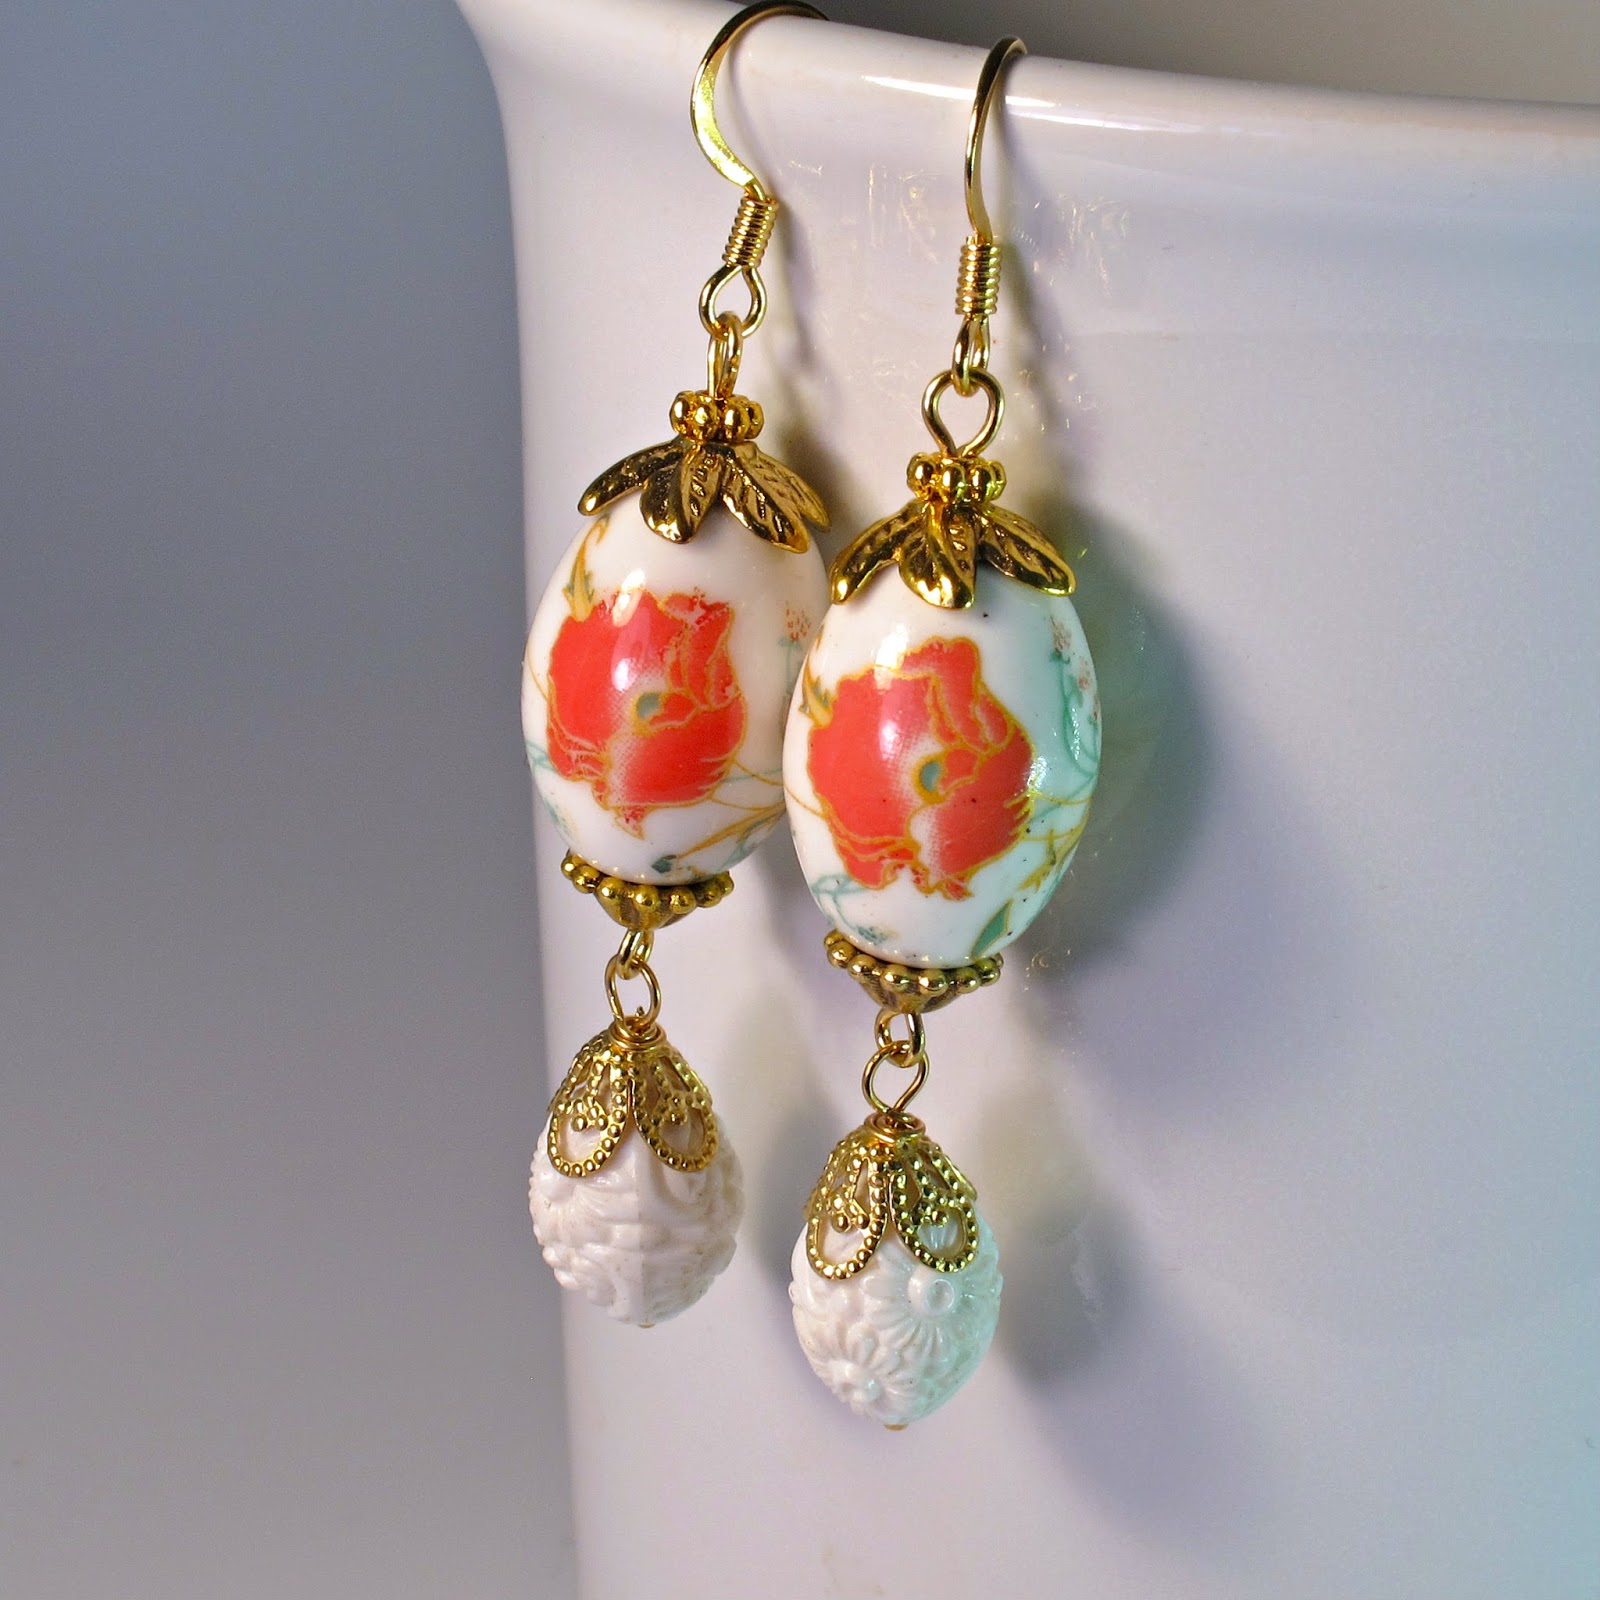 https://www.etsy.com/listing/205100209/dangling-bead-earrings-orange-poppy?ref=shop_home_active_3